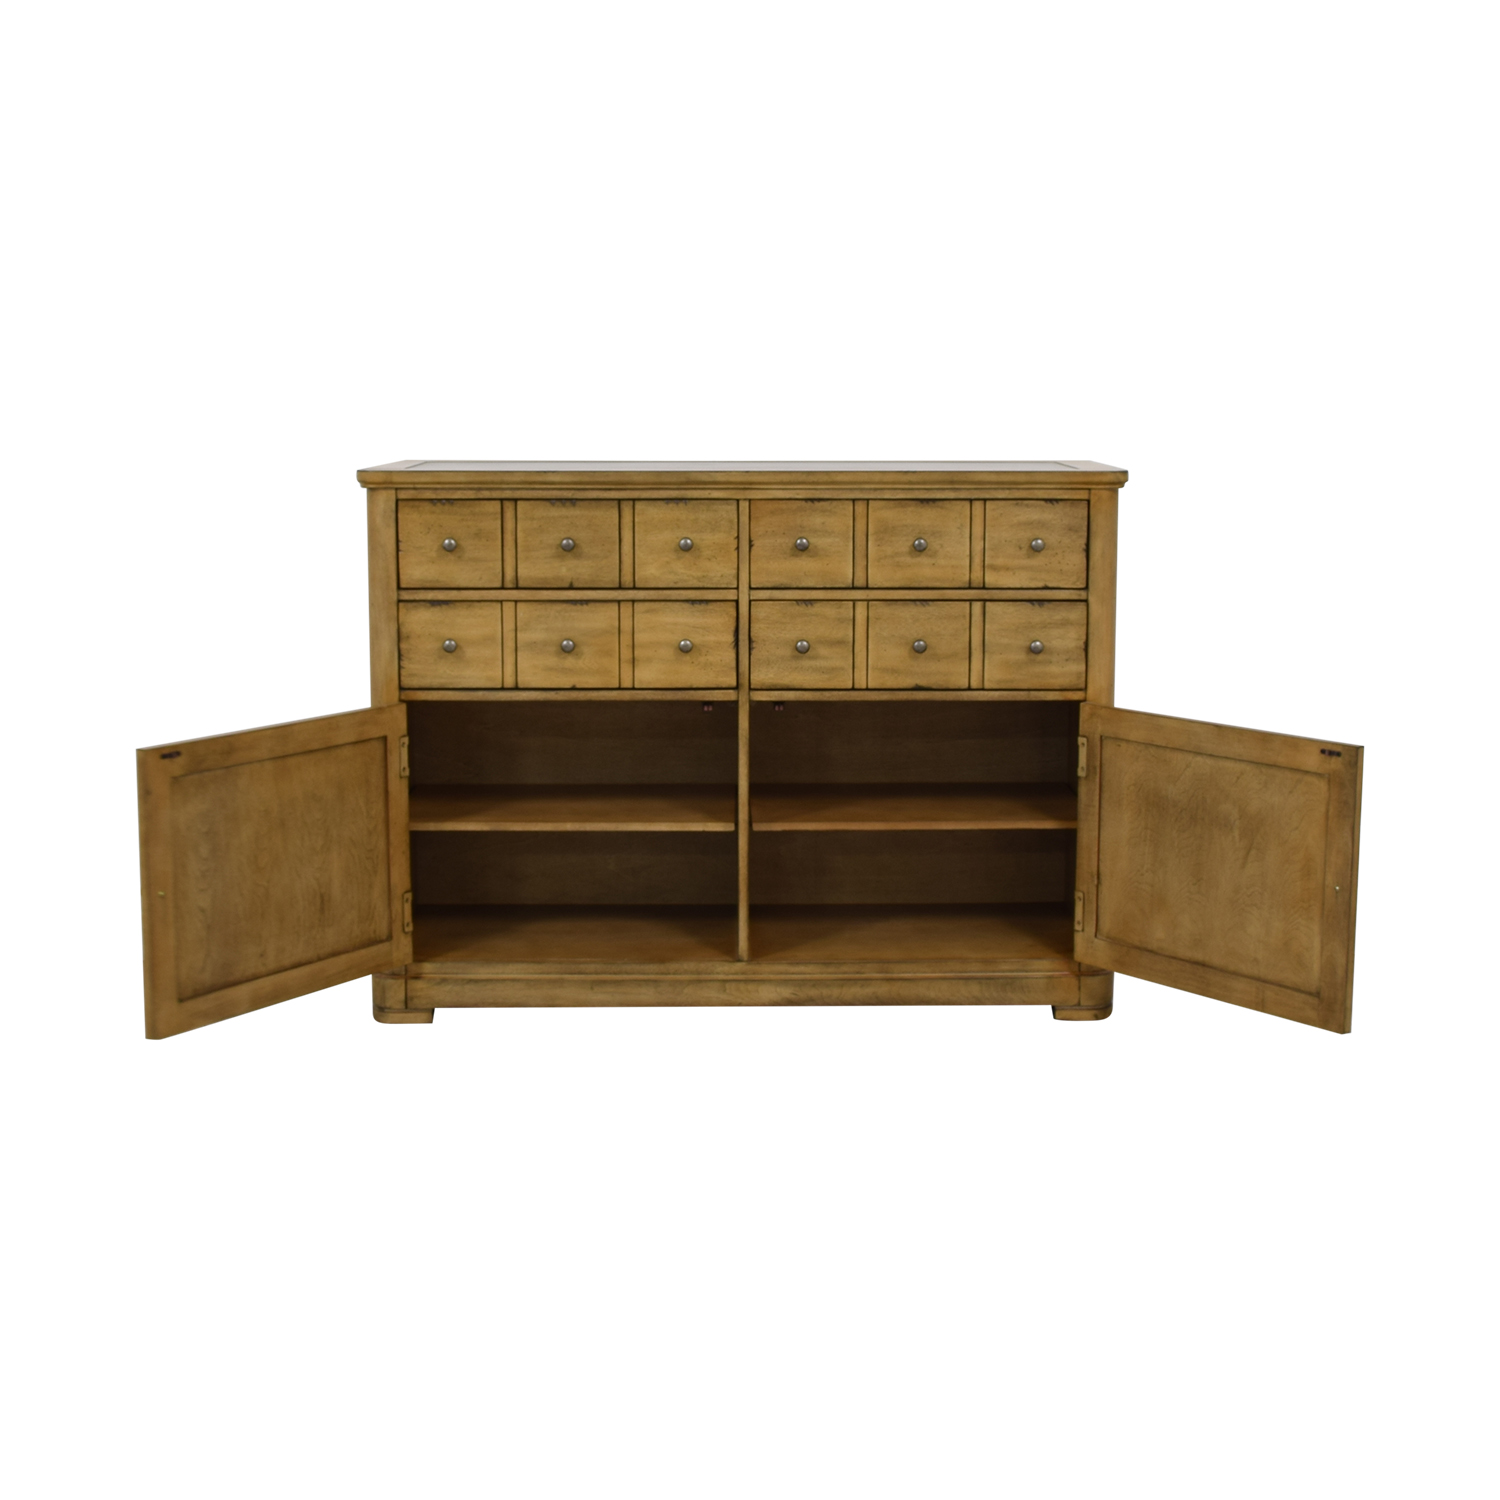 Raymour & Flanigan Raymour & Flanigan Four-Drawer Side Cabinet Buffet dimensions